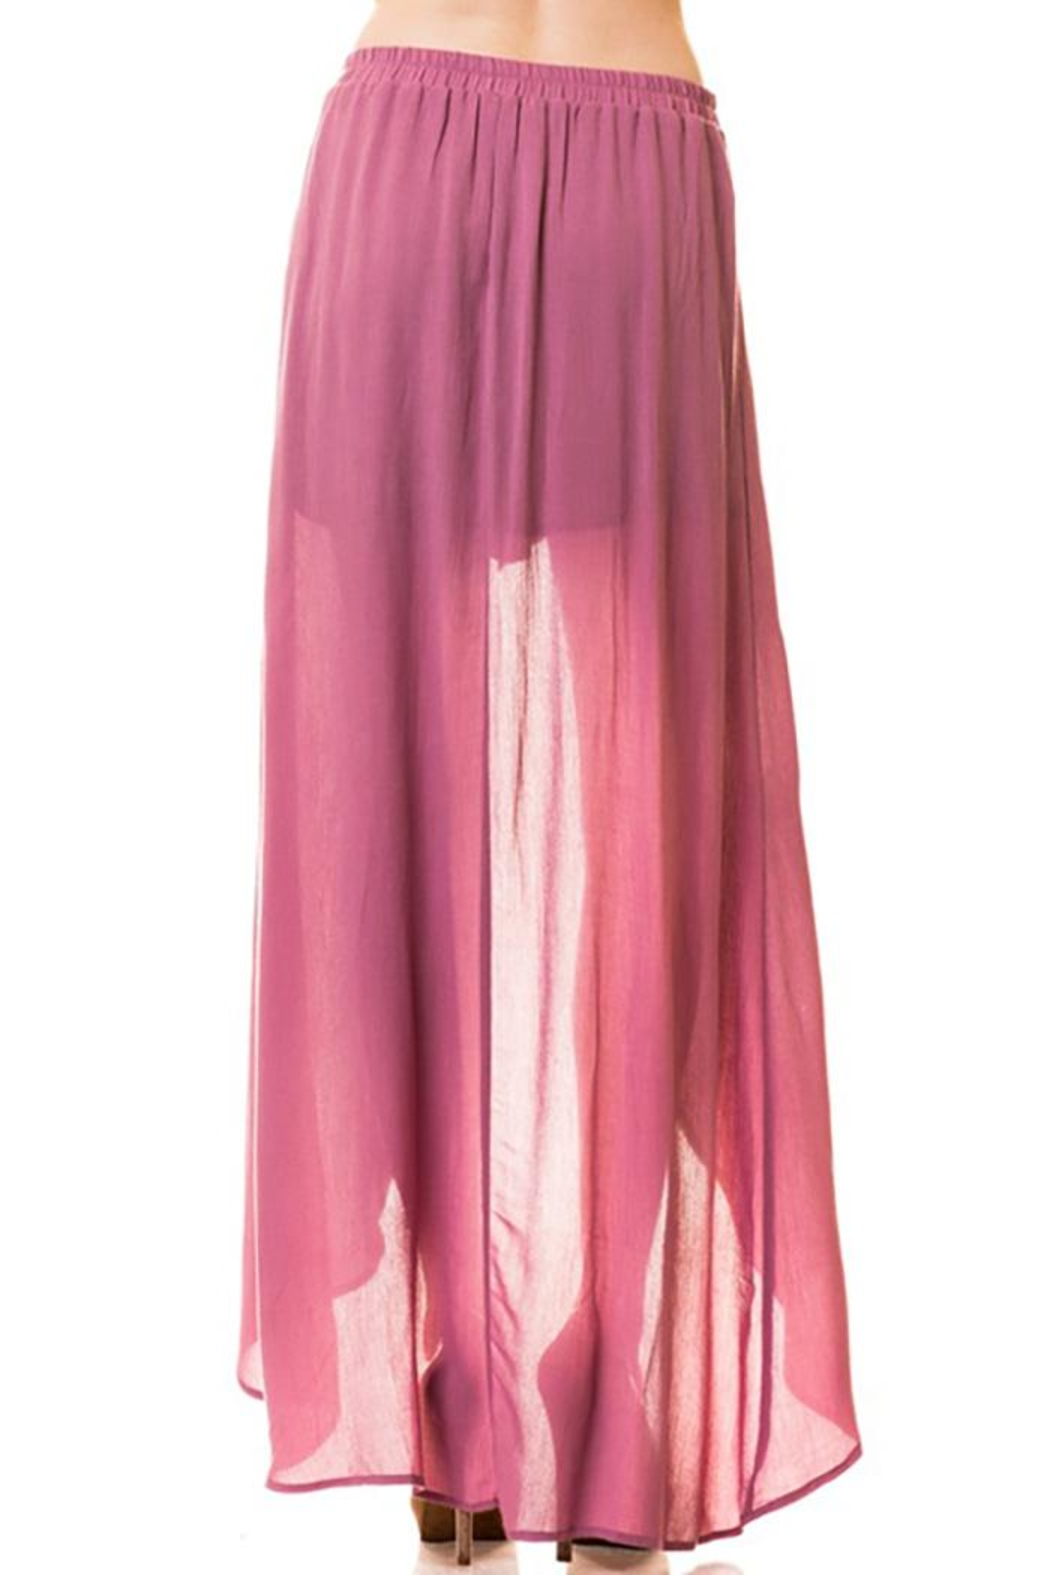 Lovetree Pants With Long-Skirts - Front Full Image